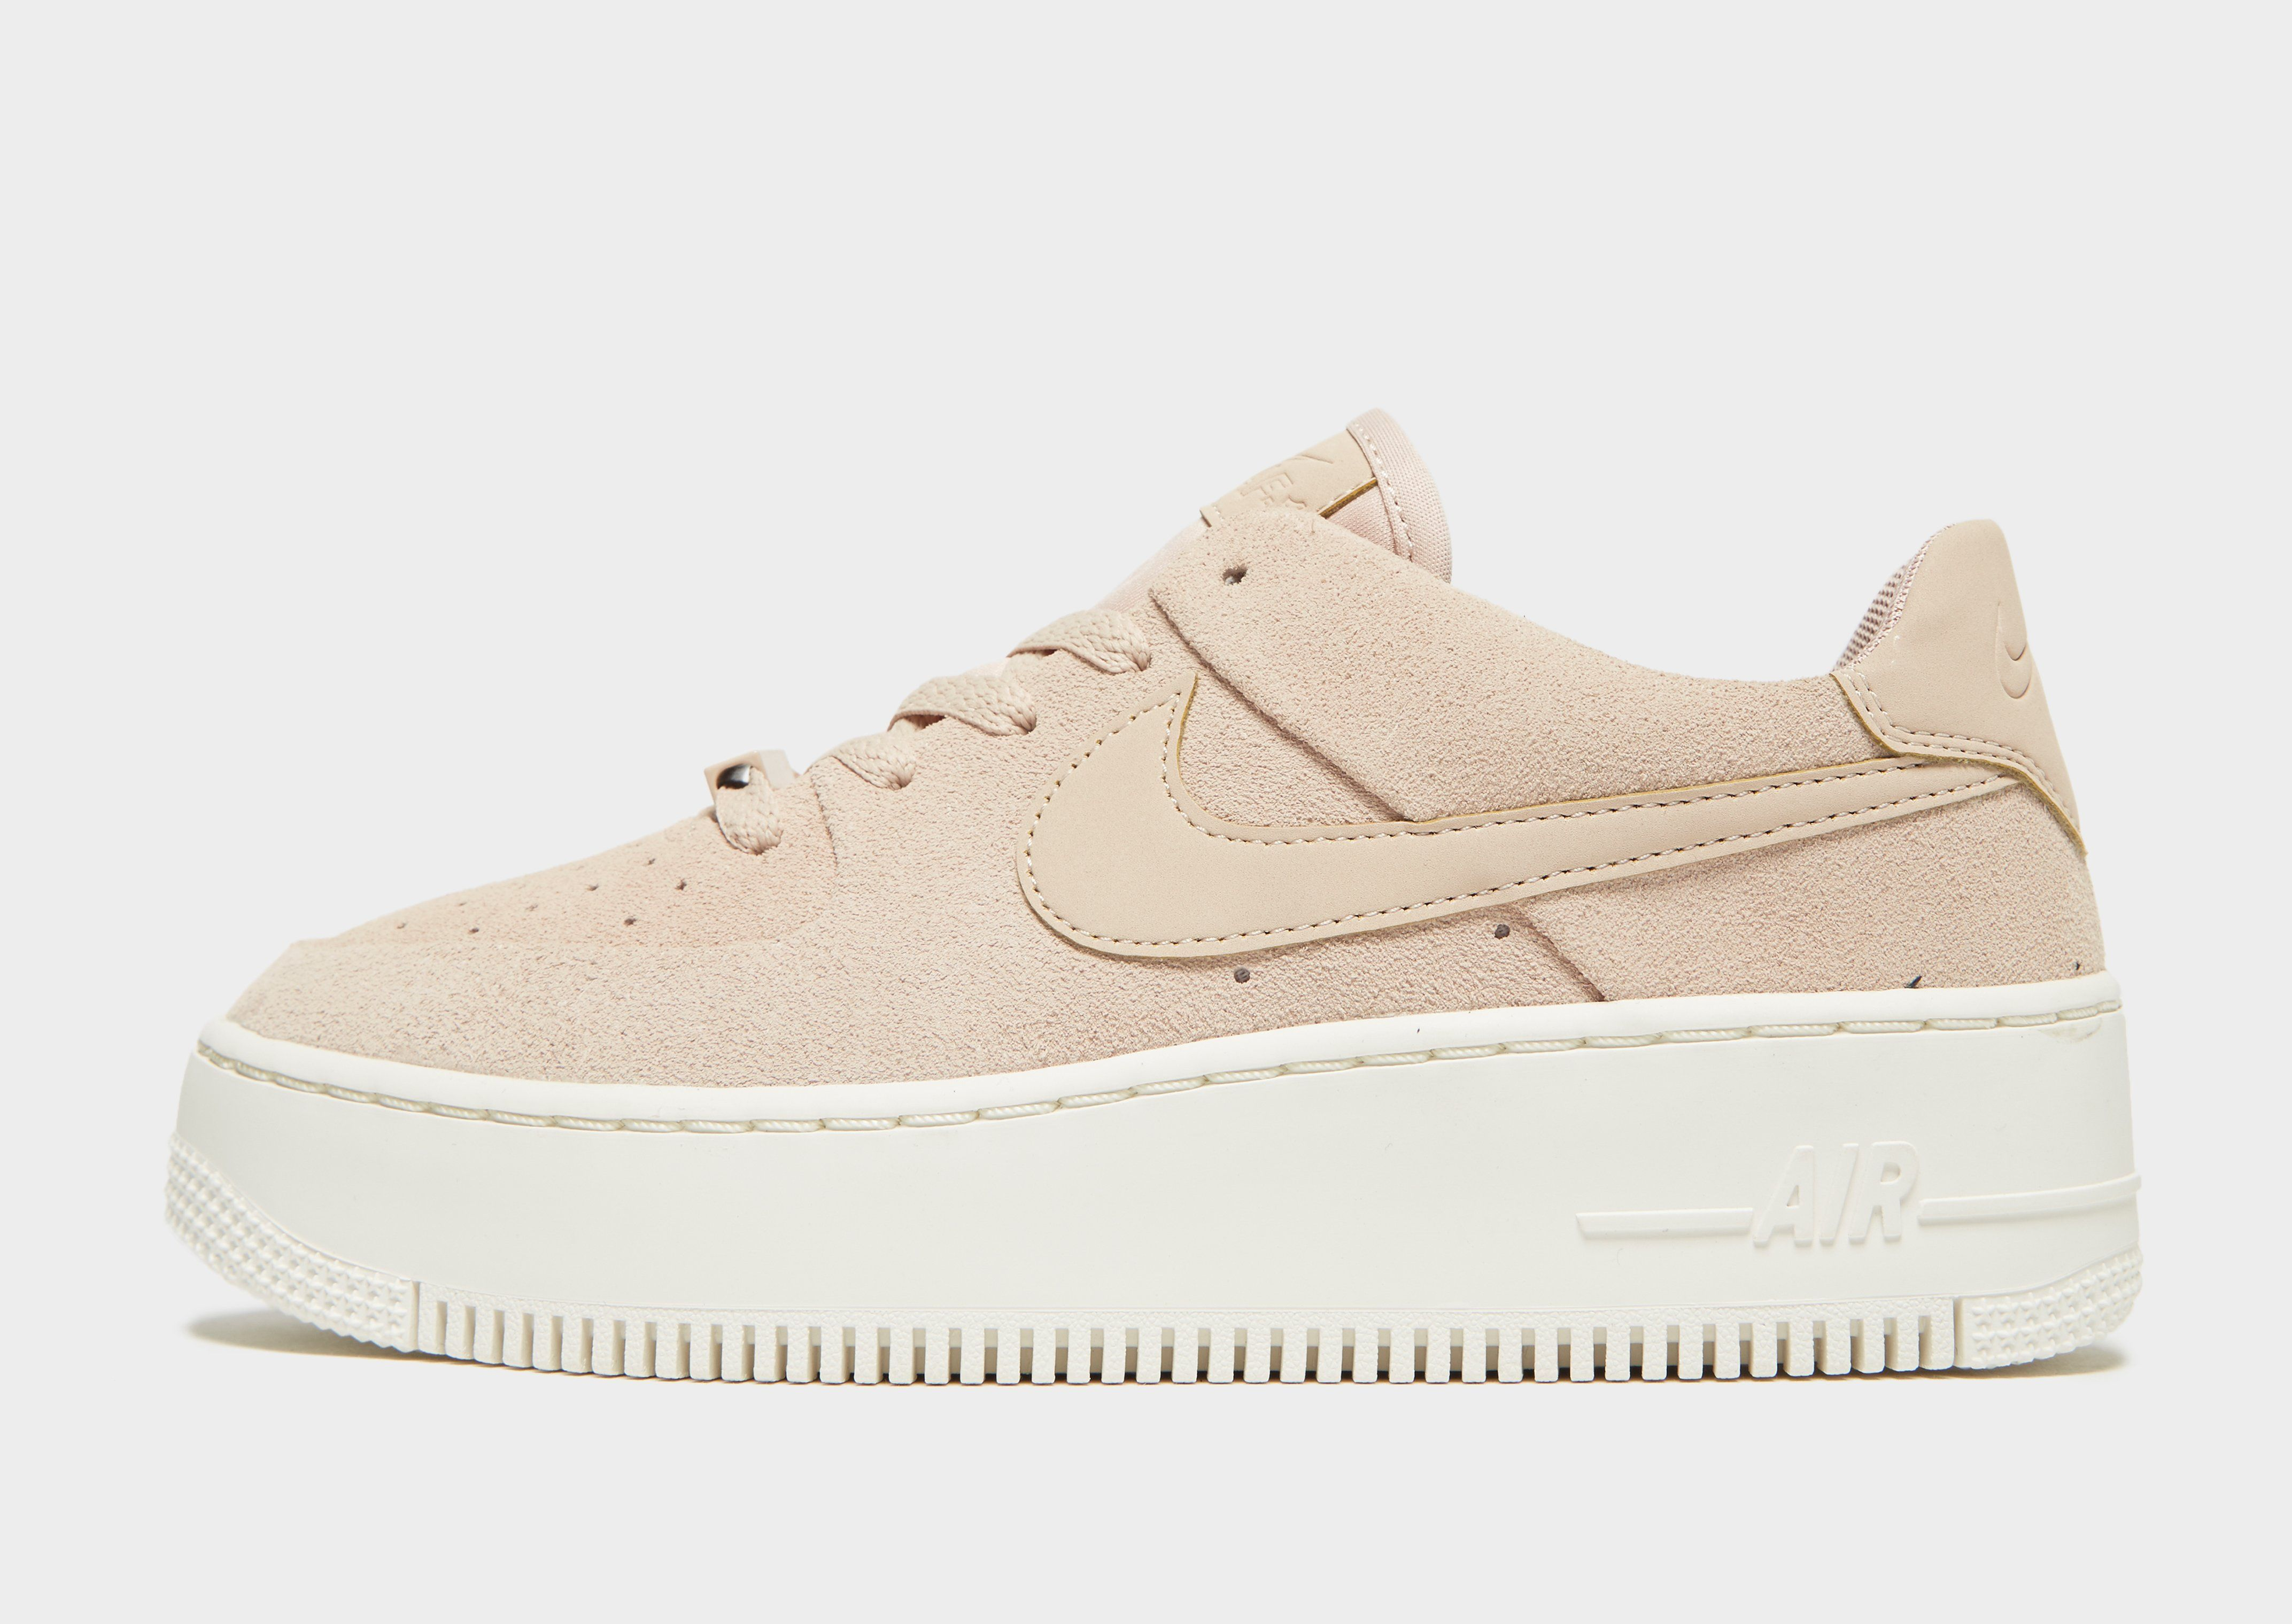 Nike Air Force 1 Sage Low Women's Shop online for Nike Air